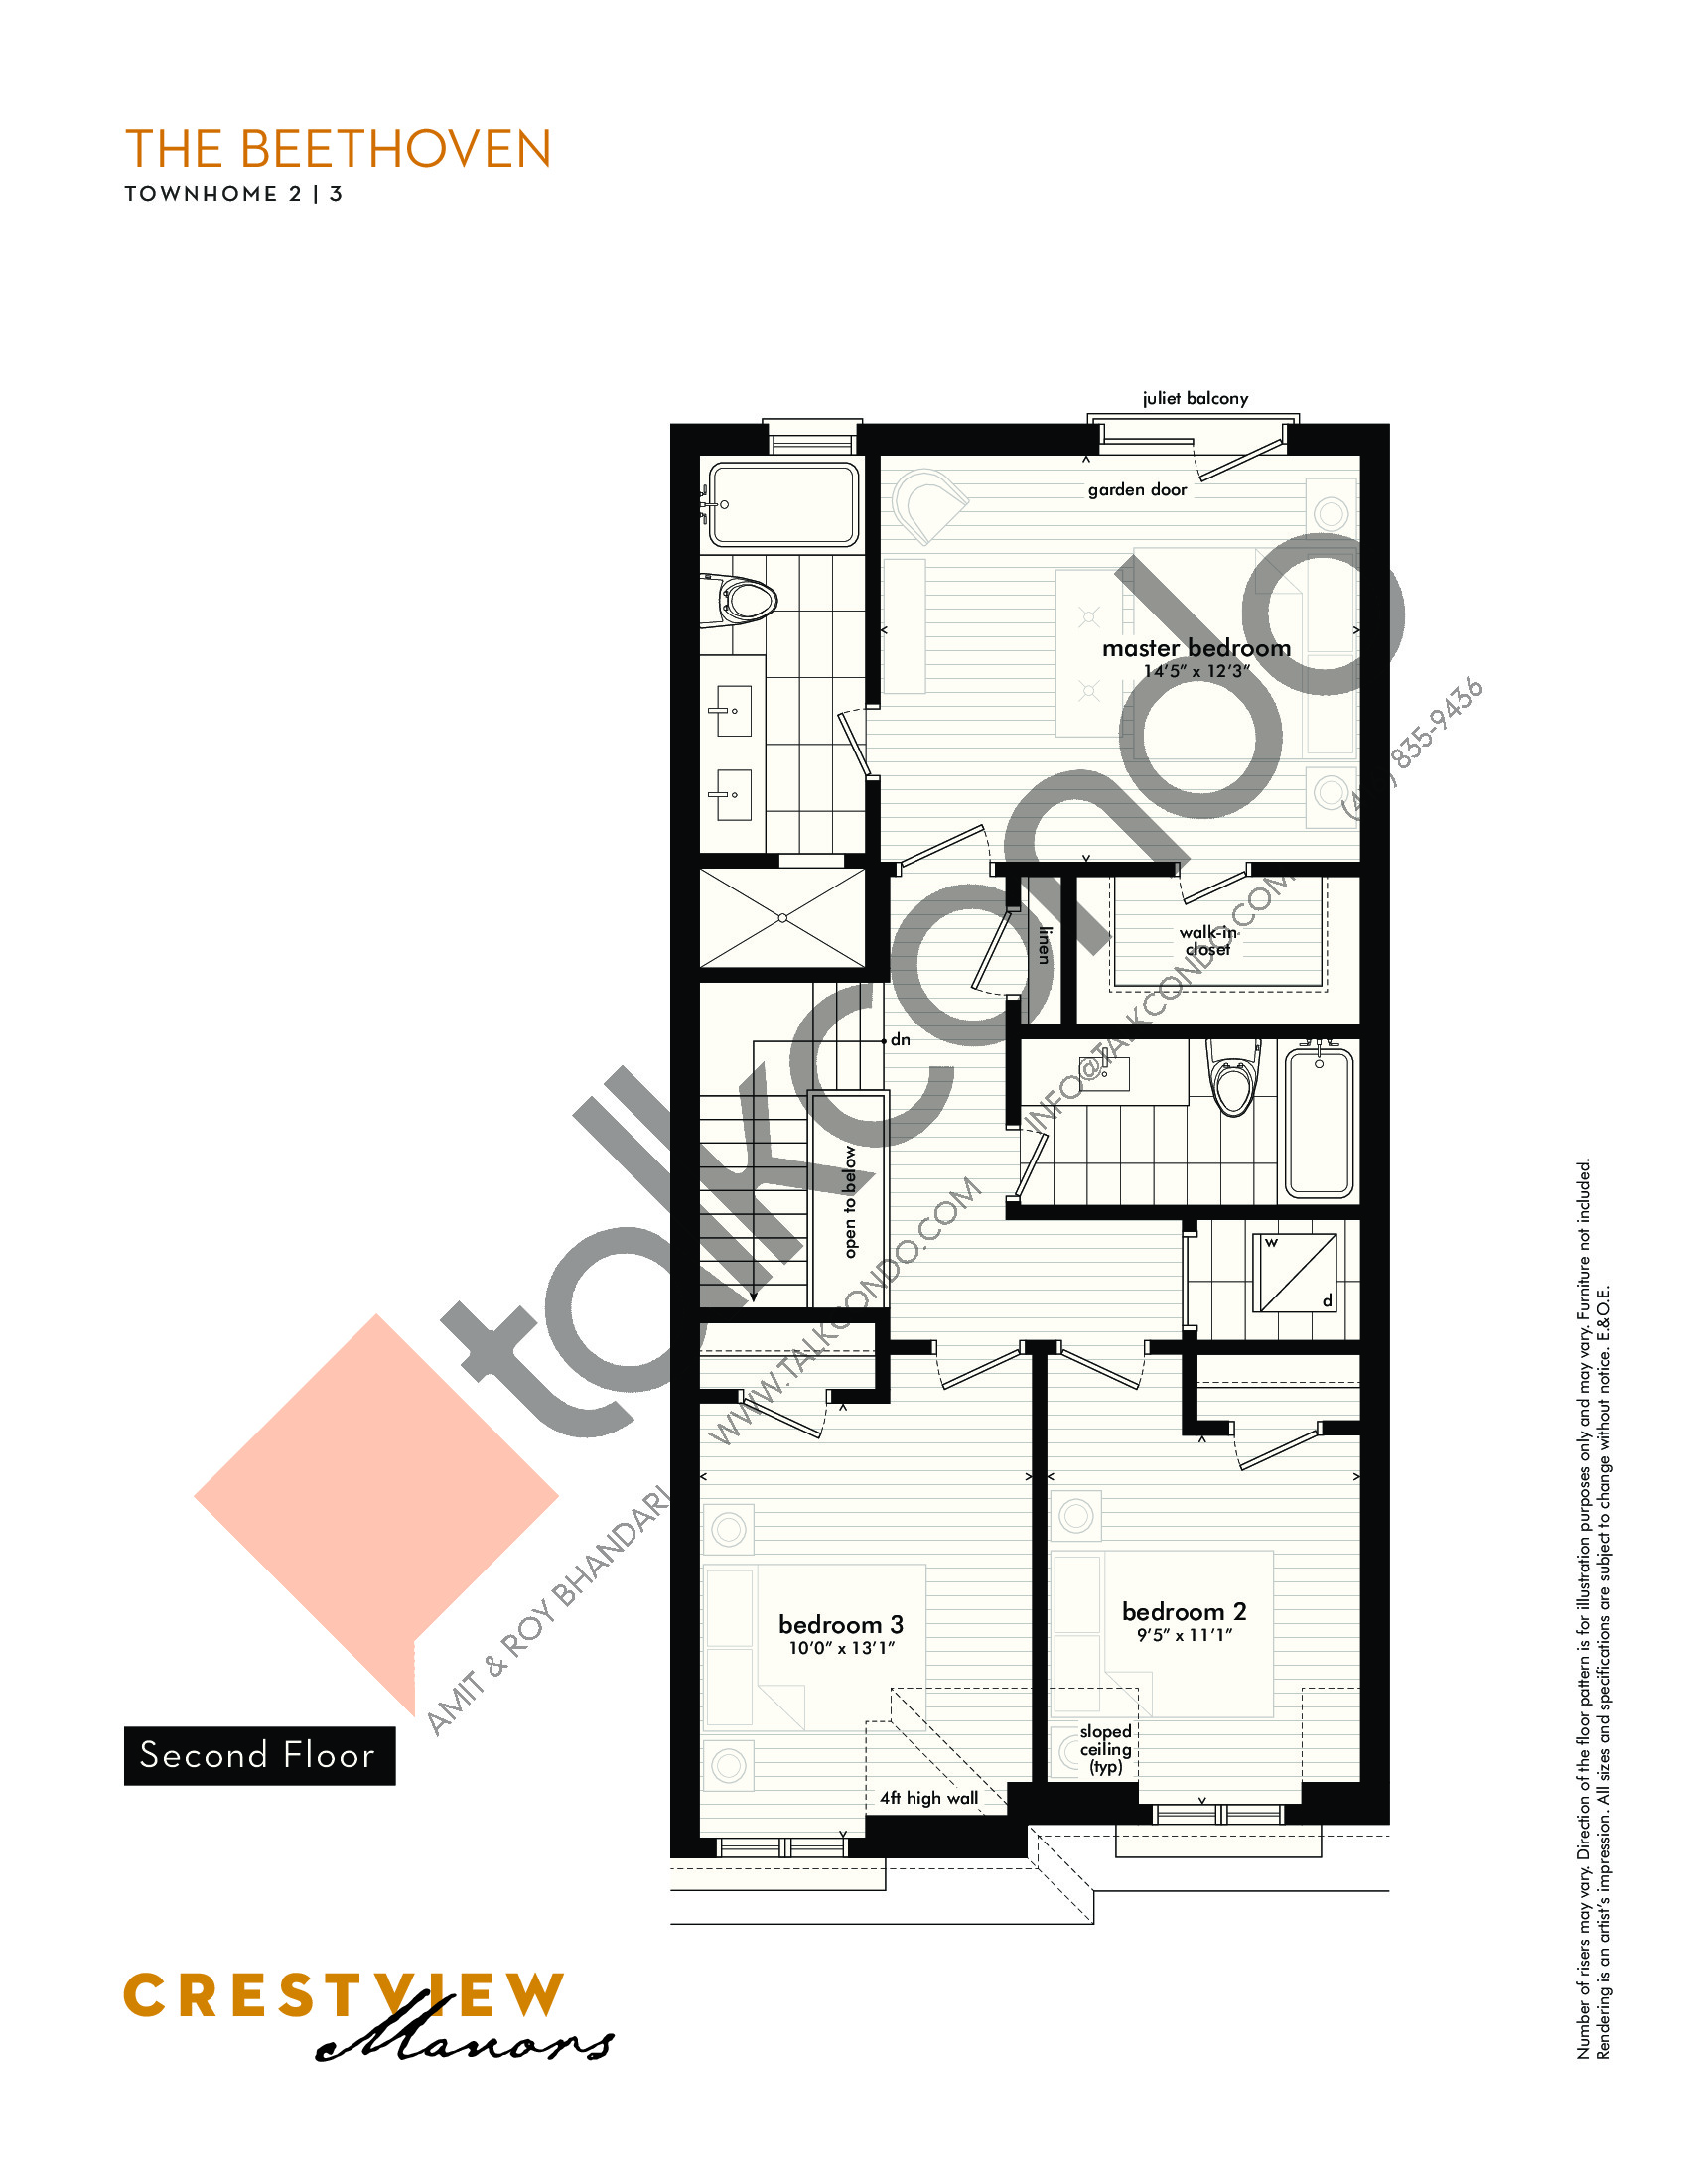 The Beethoven - Second Floor Floor Plan at Crestview Manors - 2362 sq.ft